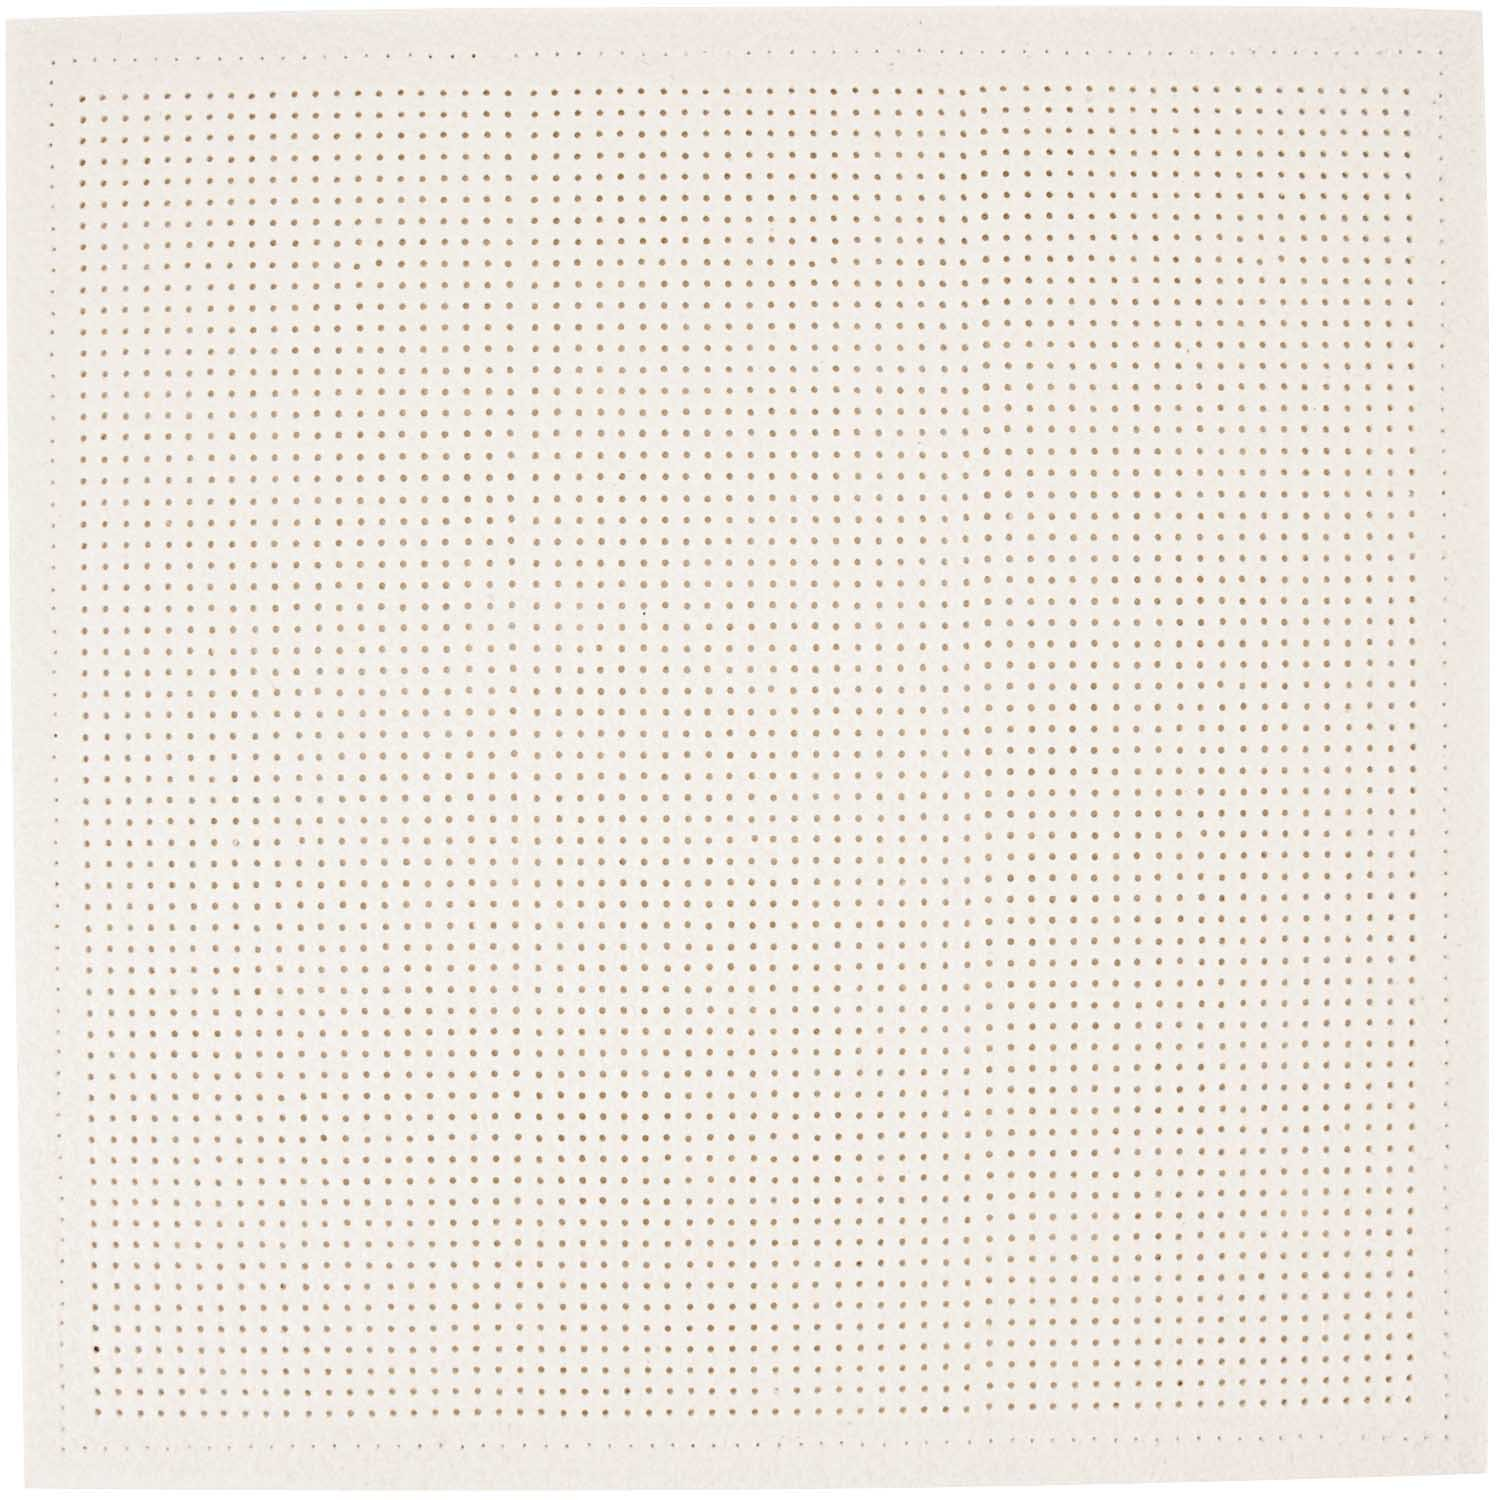 Rico Punched Felt Cushion To Cross Stitch - White